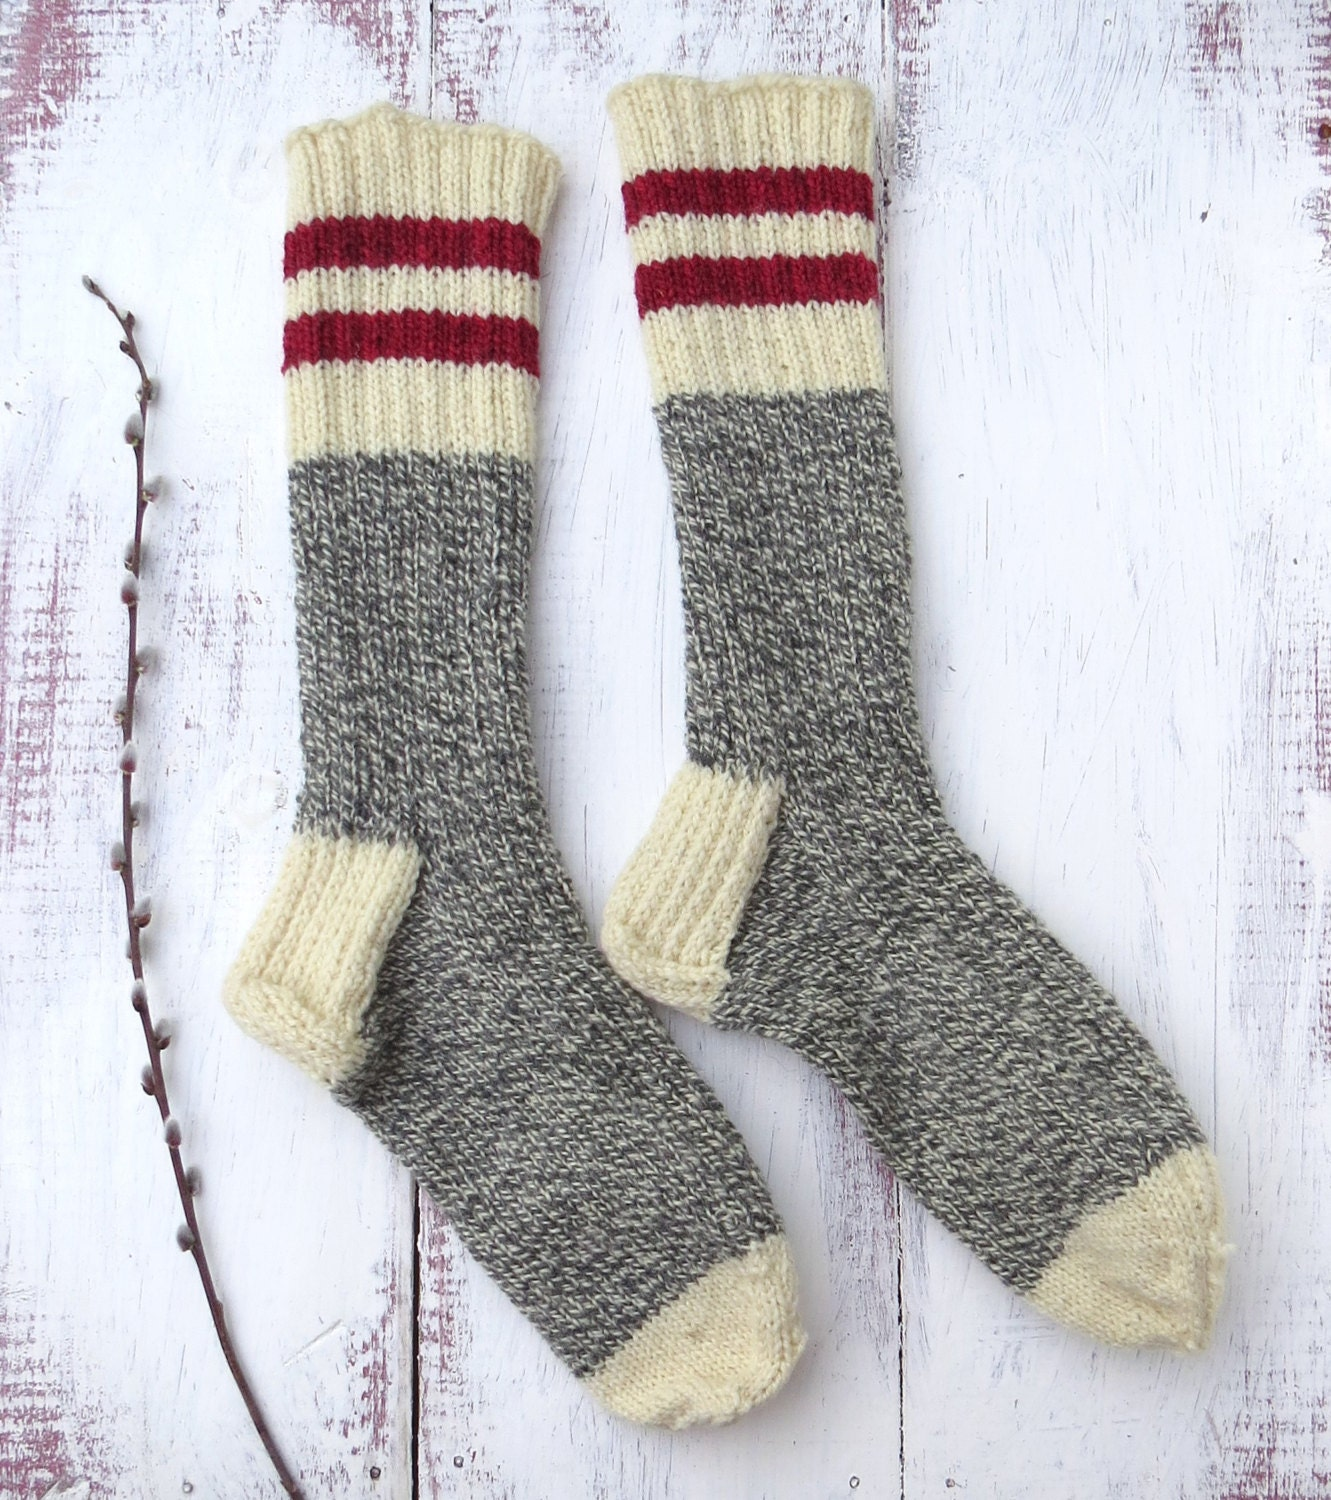 Knitting Works : Knit wool socks hand mens grey white twist with red